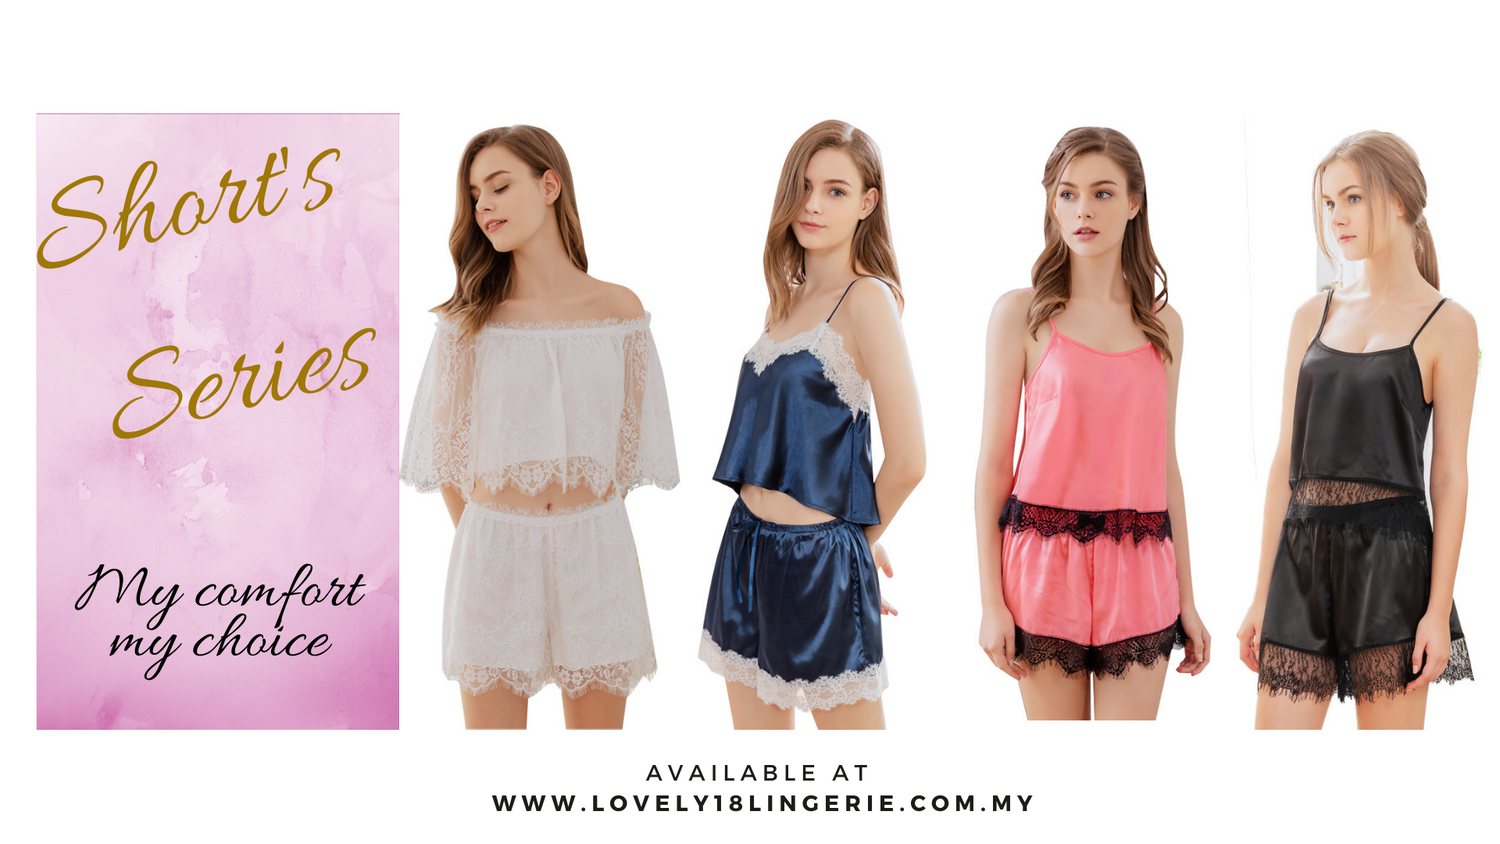 Lovely 18 Lingerie Collection |